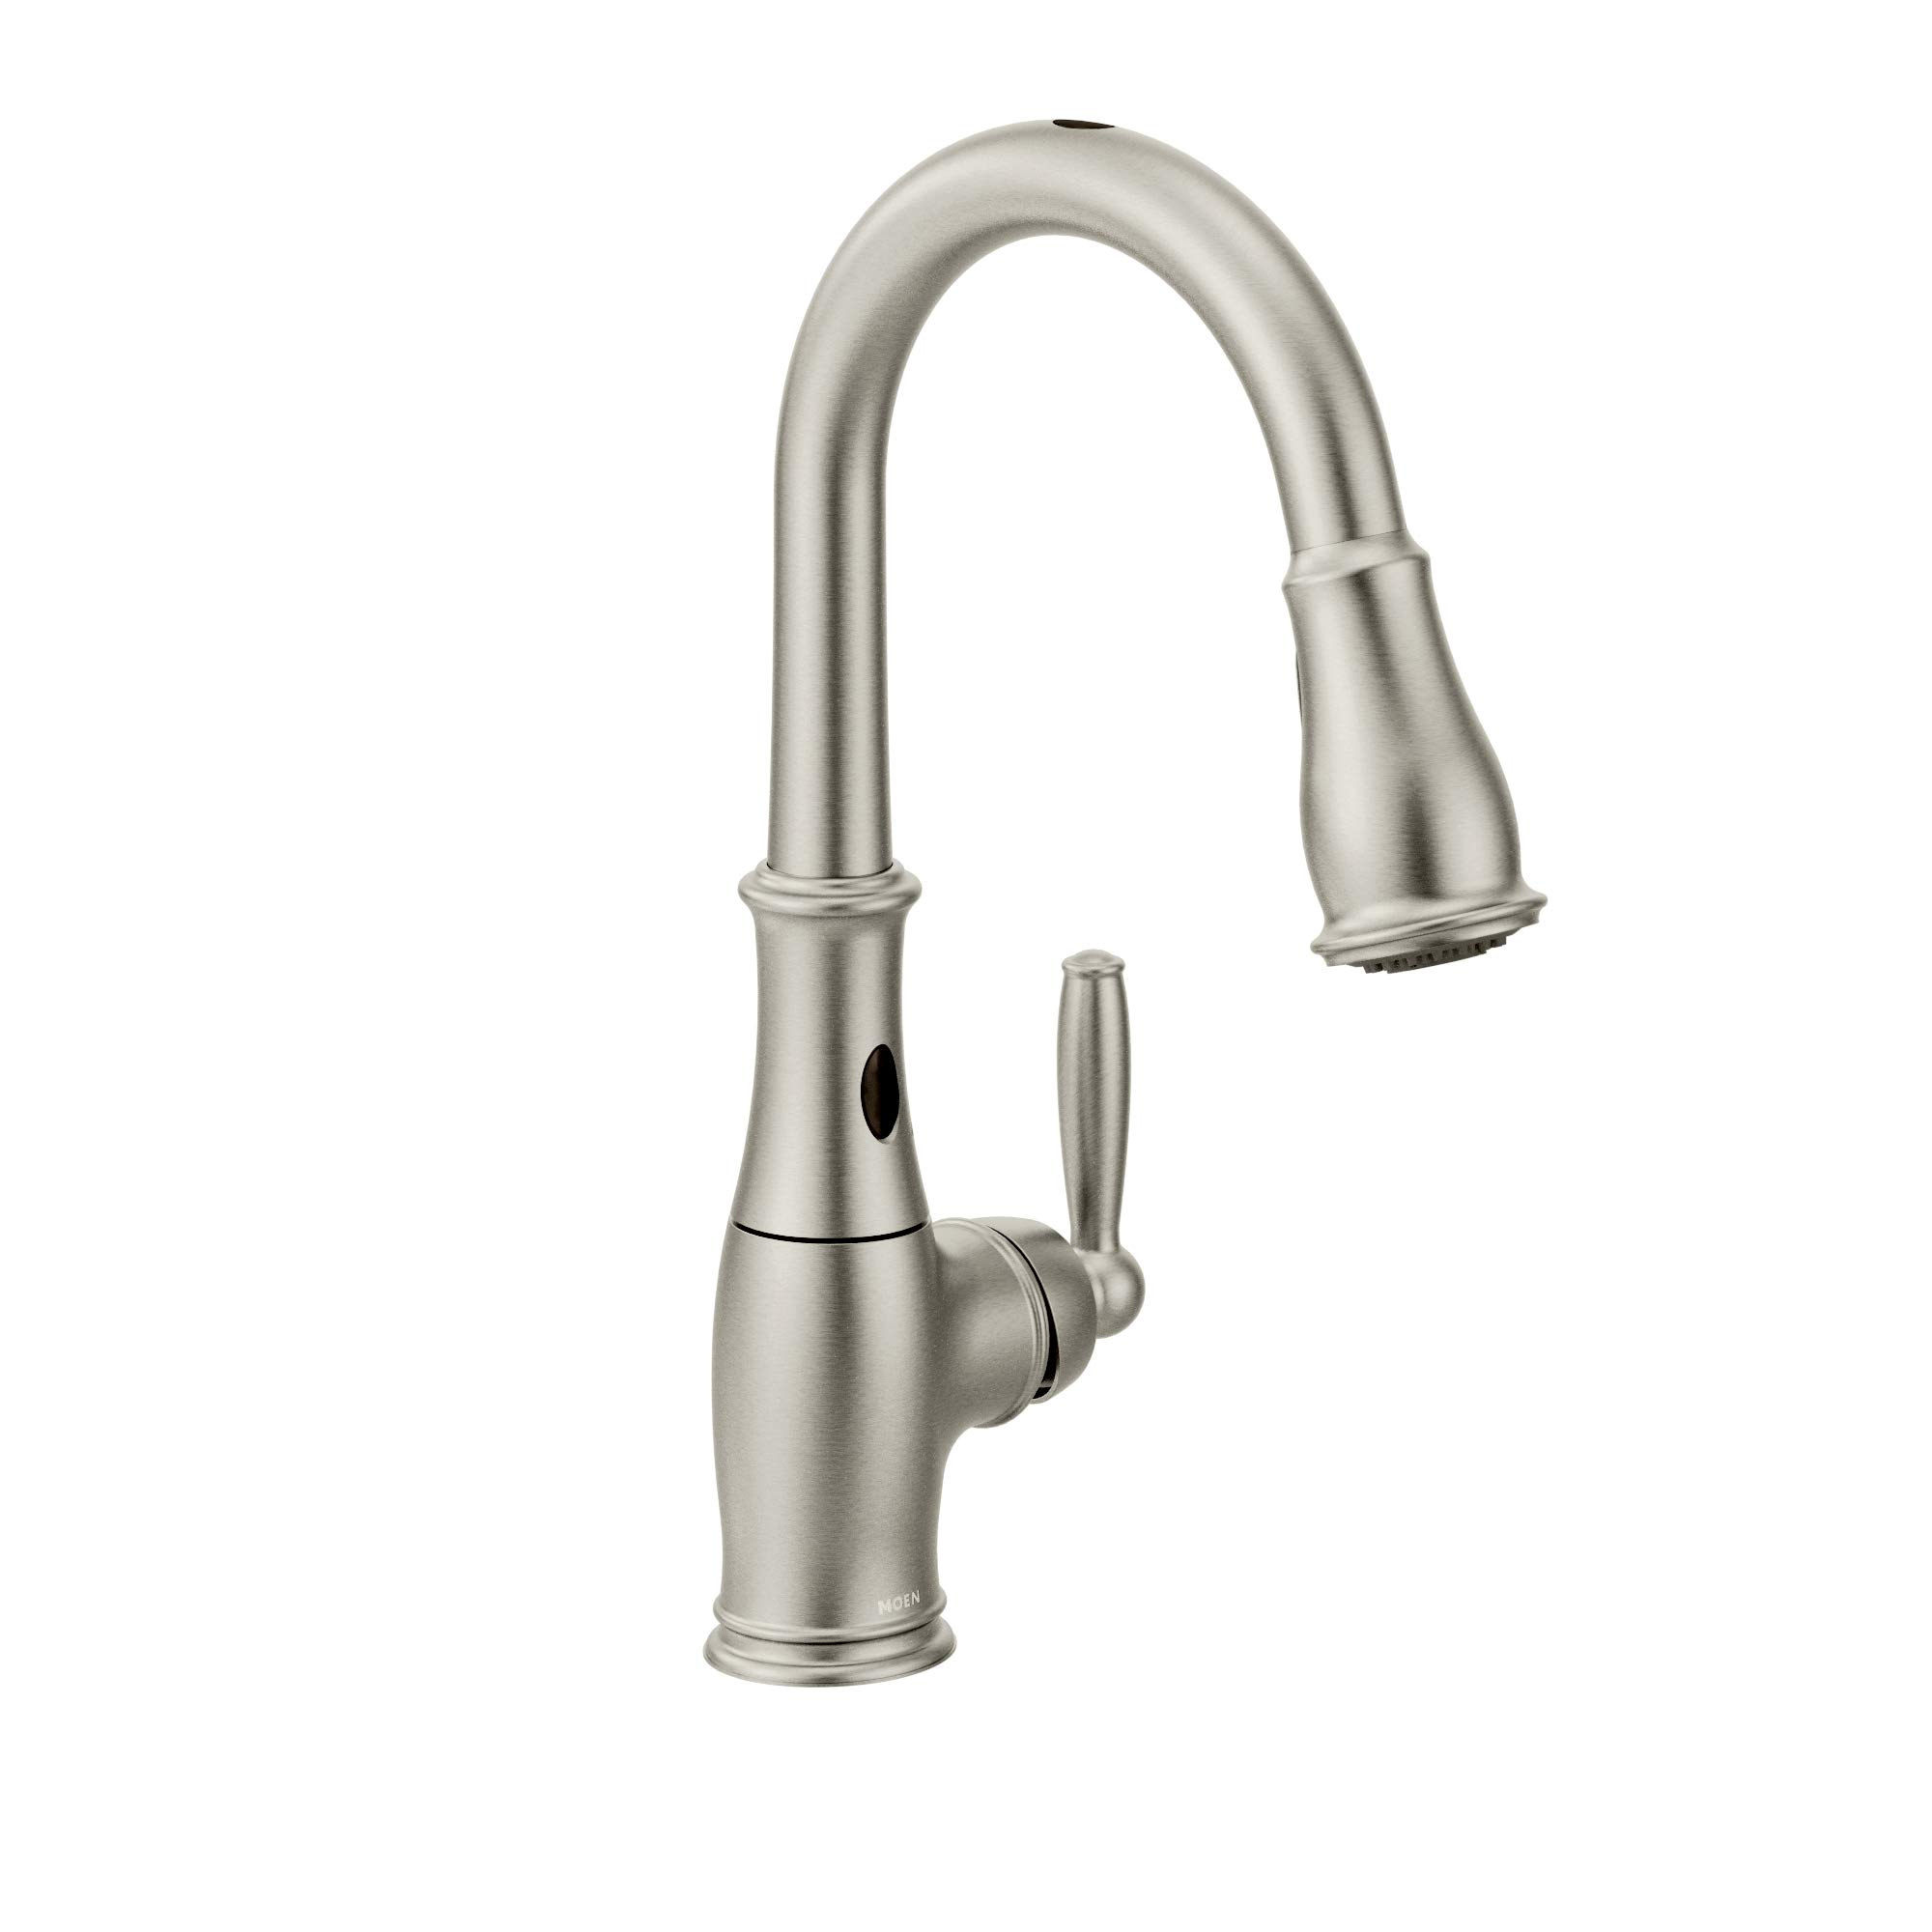 Moen 7185ESRS Brantford Motionsense Two-Sensor Touchless One-Handle High Arc Pulldown Kitchen Faucet Featuring Reflex, Spot Resist Stainless by Moen